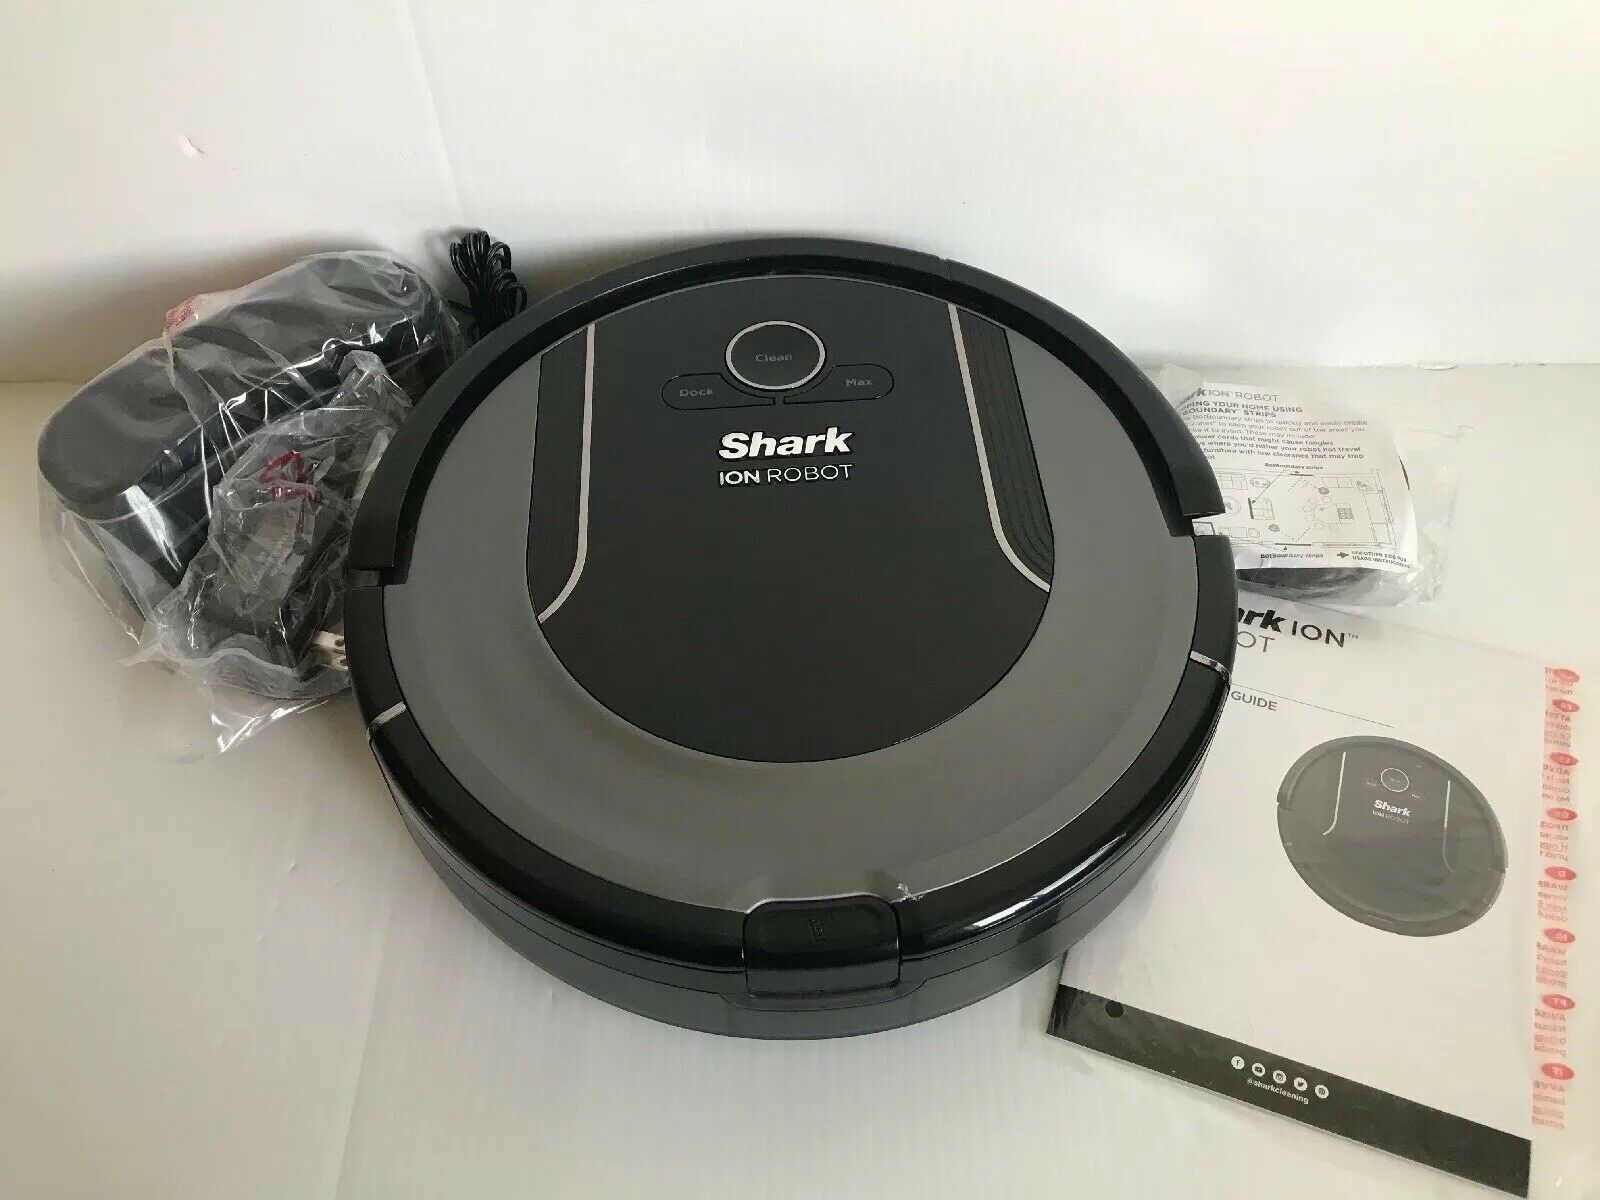 Shark ION R85 Robot Vacuum Cleaning System w  Google & Alexa Voice Control RV850